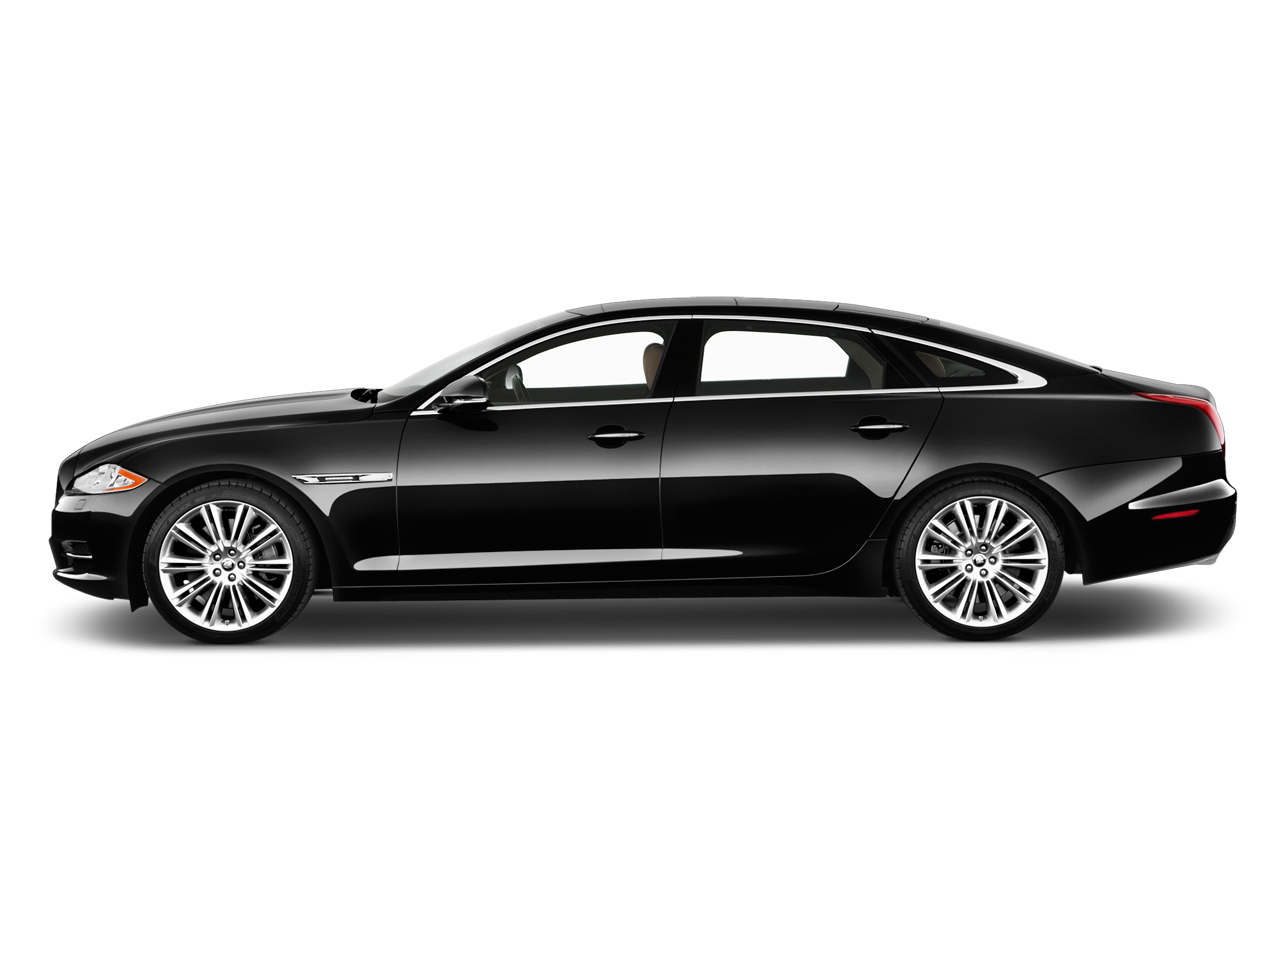 2015 jaguar f type xf xj recalled for steering failure fire risk. Black Bedroom Furniture Sets. Home Design Ideas